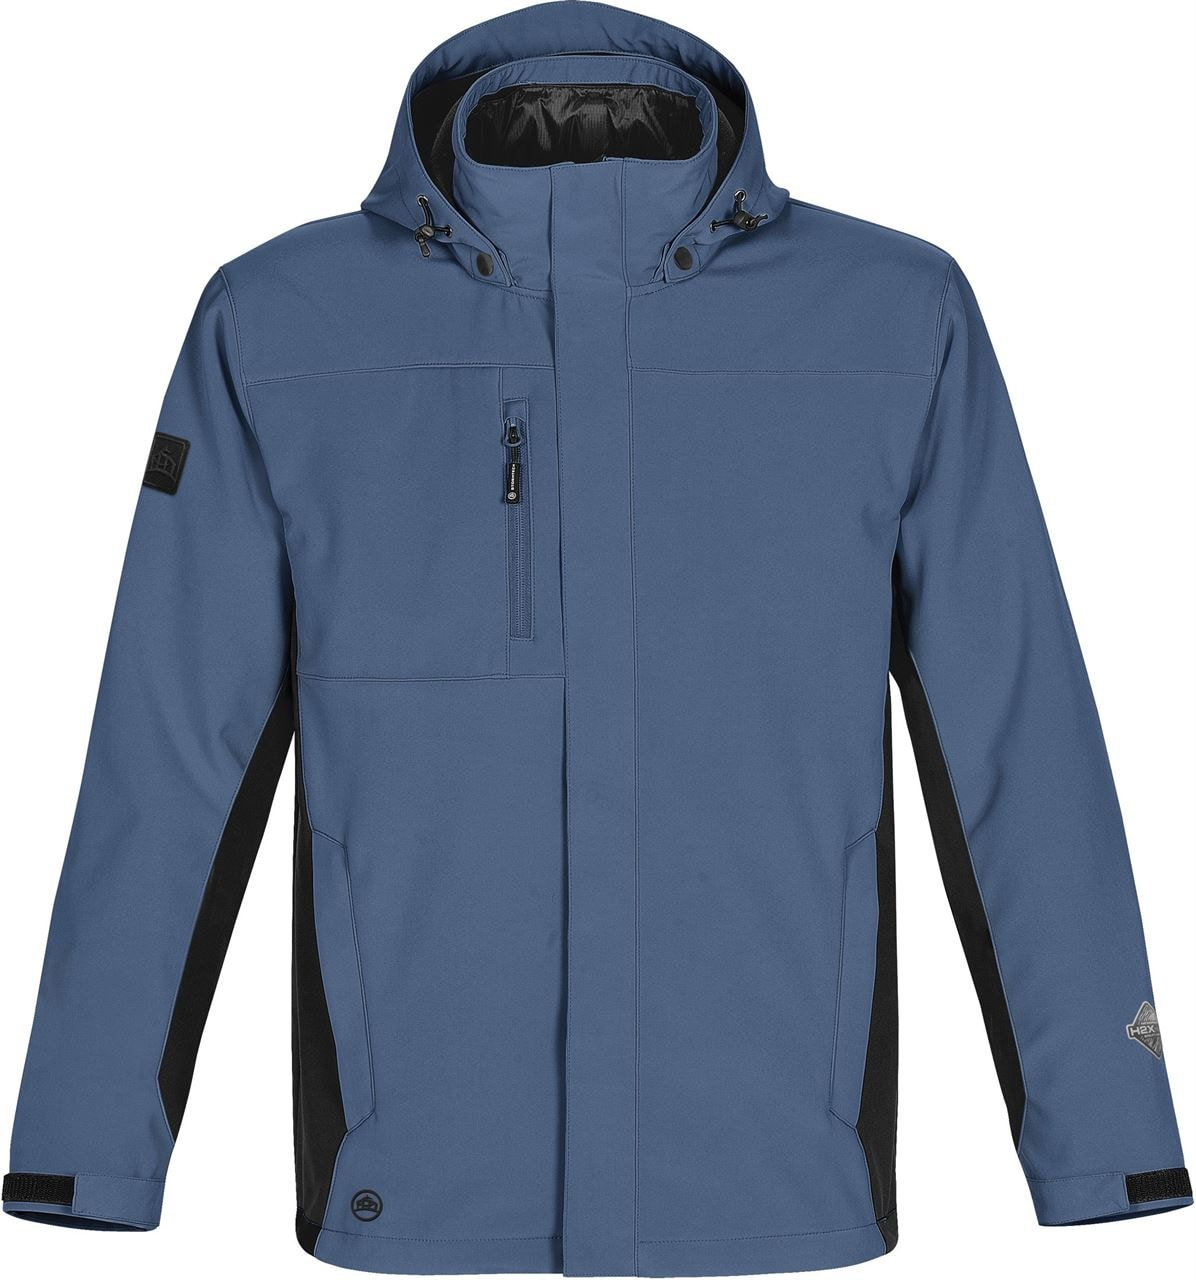 Picture of Stormtech Men's Atmosphere 3-in-1 System Jacket